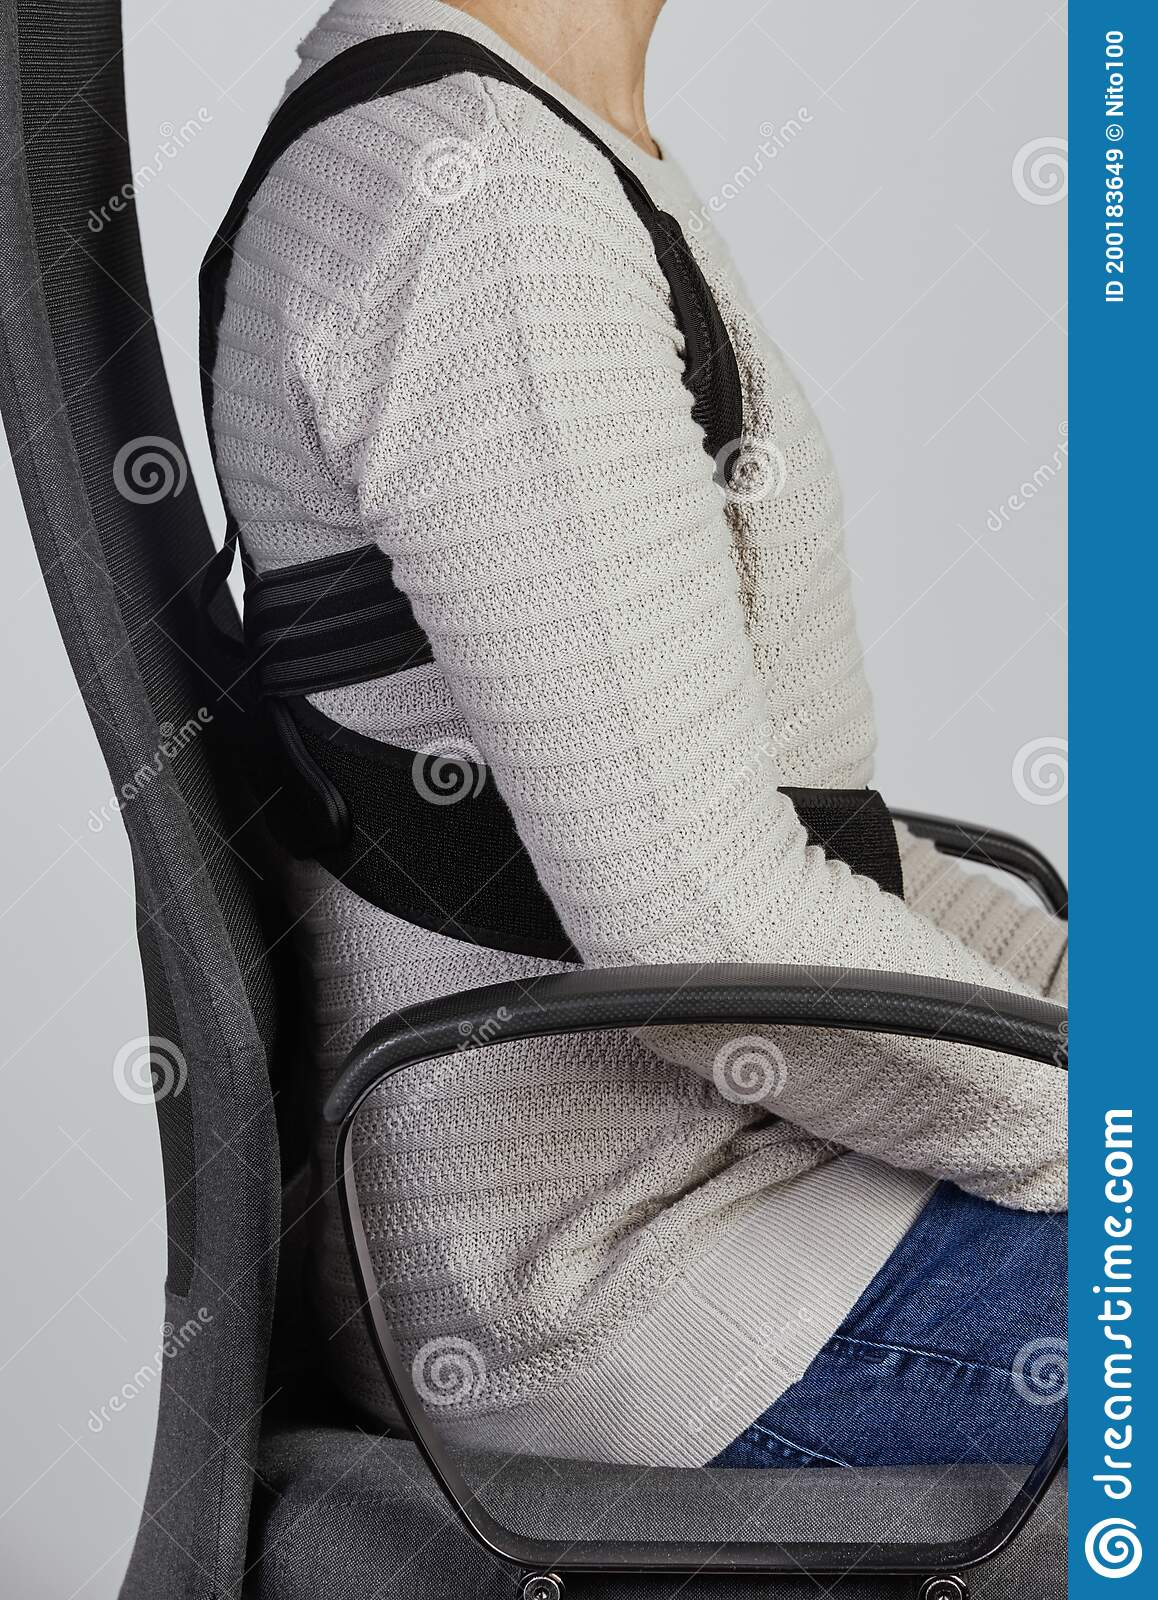 Man Wearing A Posture Corrector While Sitting Stock Image Image Of Chair Healthcare 200183649